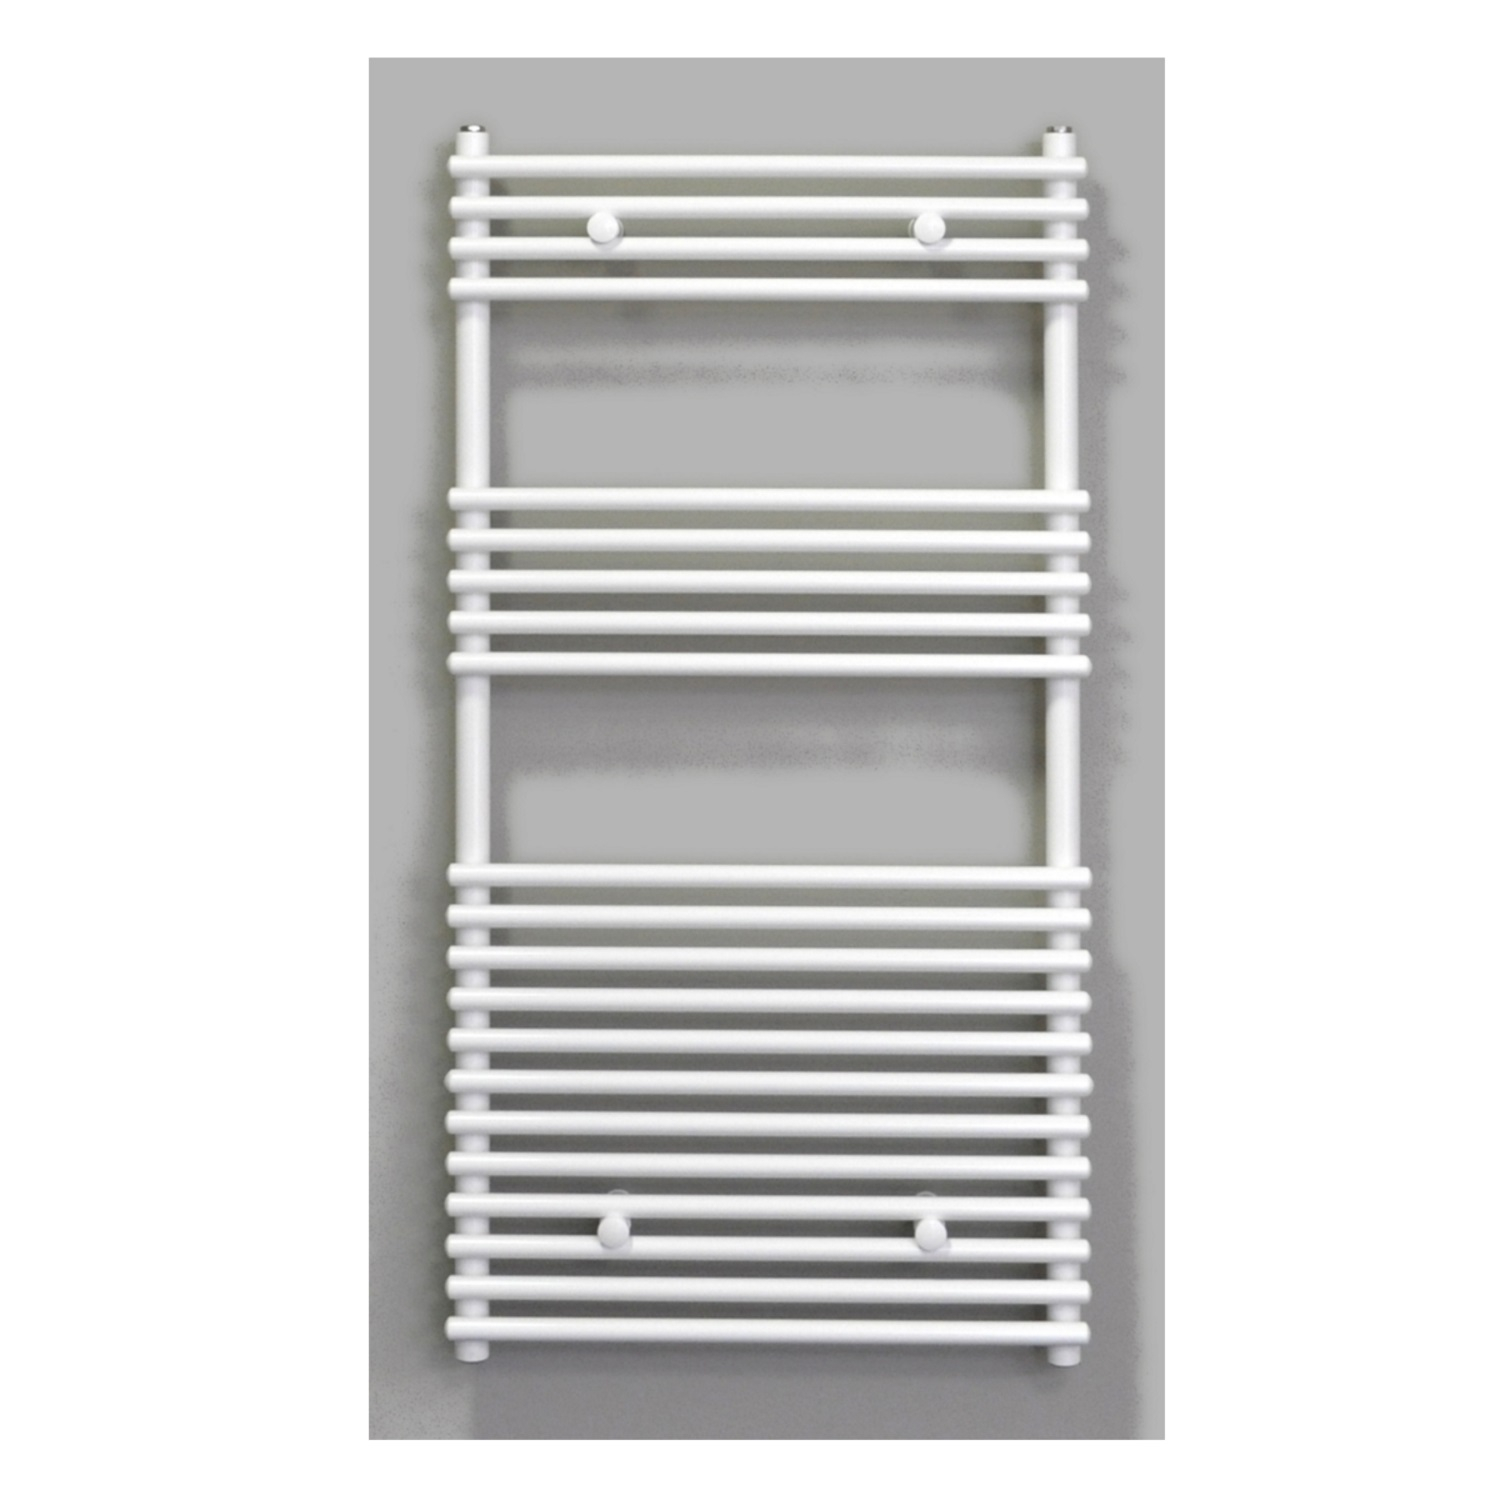 Radiator Sanicare Tube-On-Tube 880 Watt Inclusief Ophanging 60x120 cm Antraciet